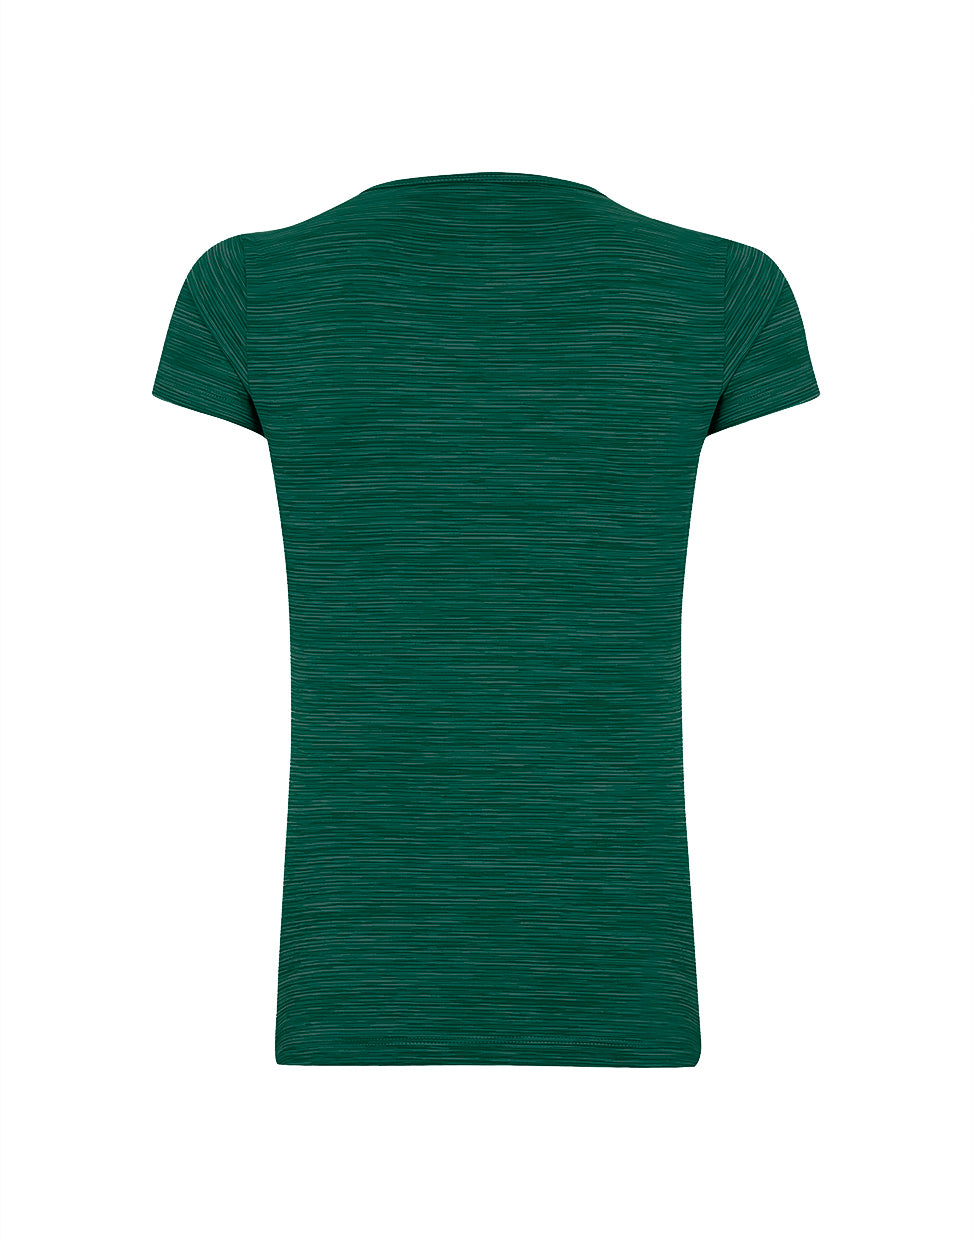 CAMISETA BASIC COLOR -VERDE